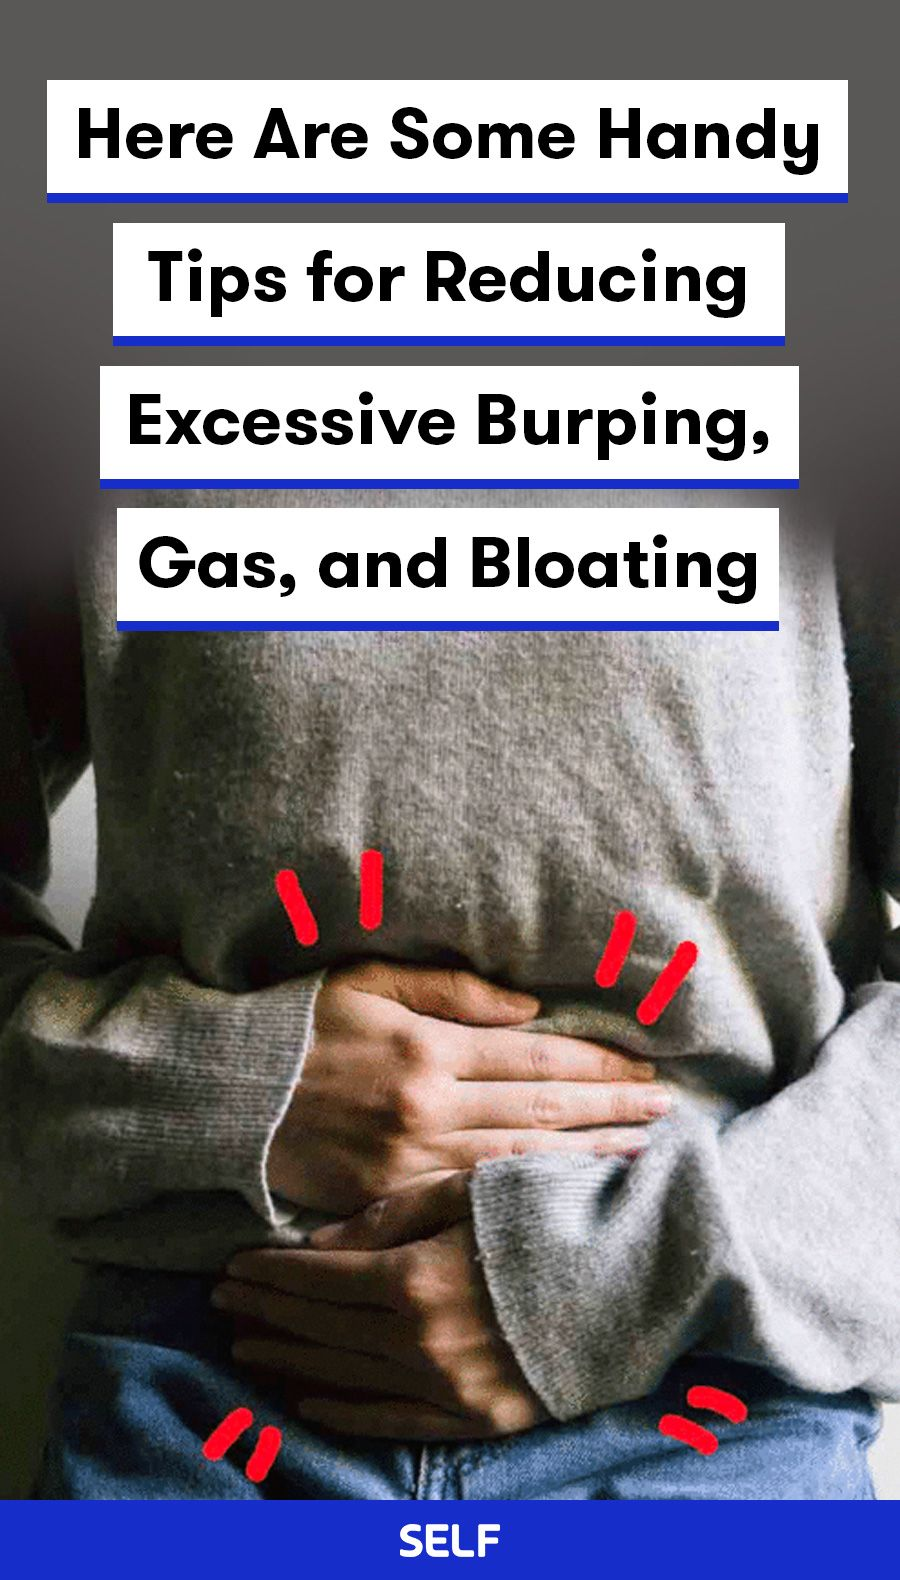 50e7641b5b2a3359e4ba3f04e405209c - How To Get Rid Of Trapped Gas In Your Chest